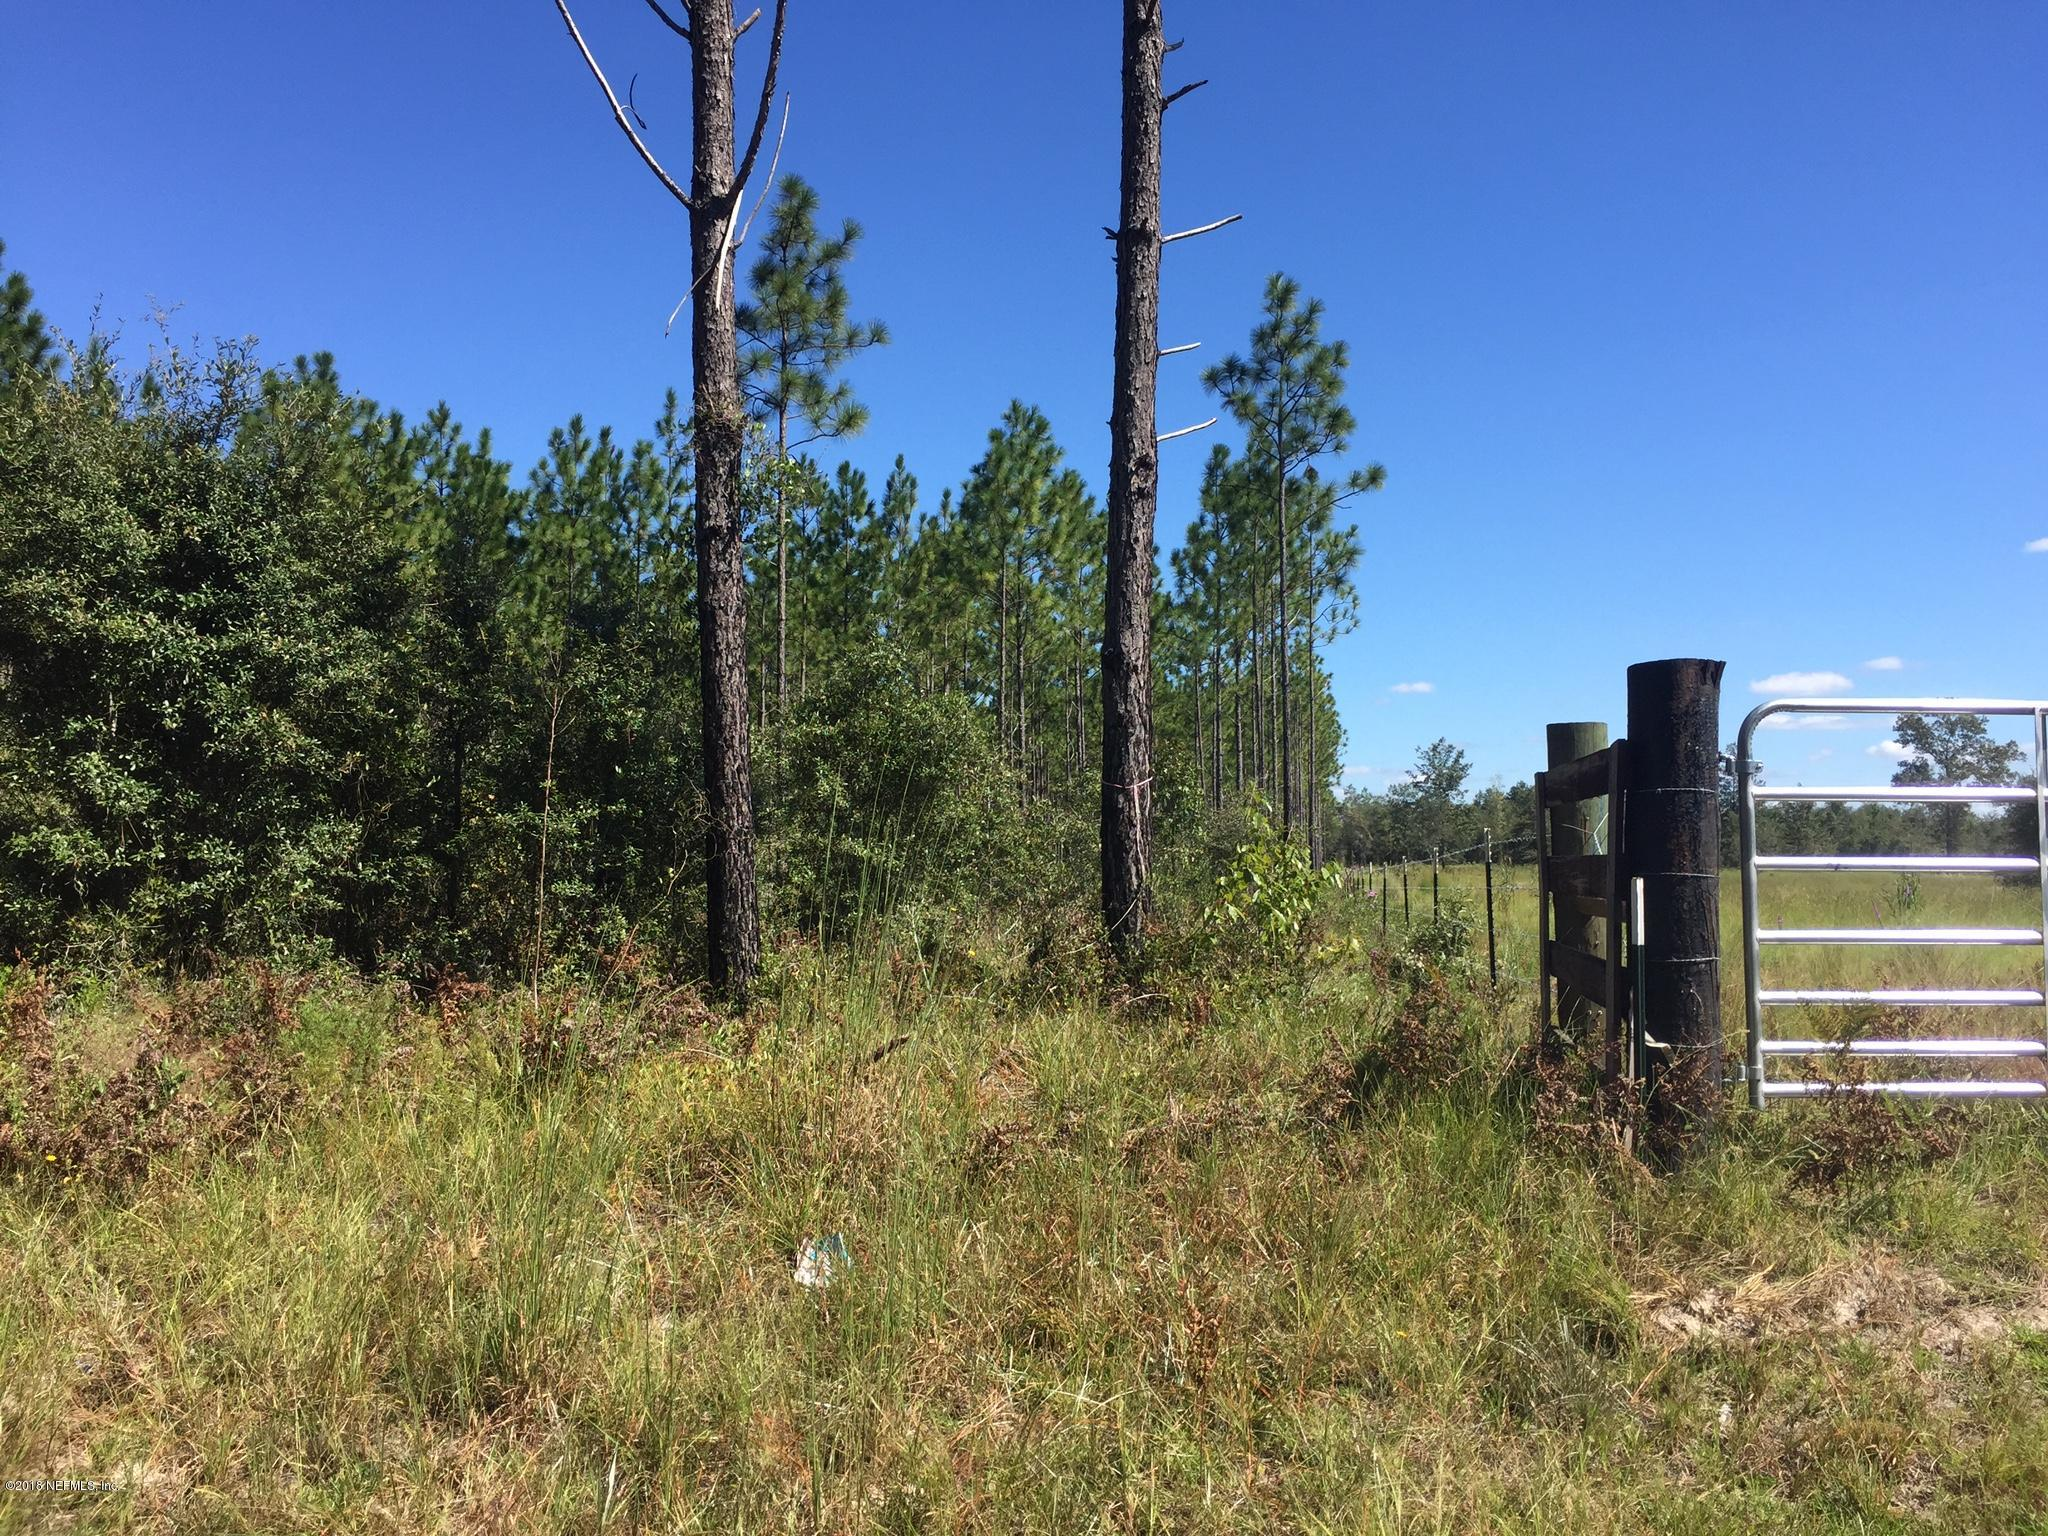 0 COUNTY ROAD 121, HILLIARD, FLORIDA 32046, ,Vacant land,For sale,COUNTY ROAD 121,953672